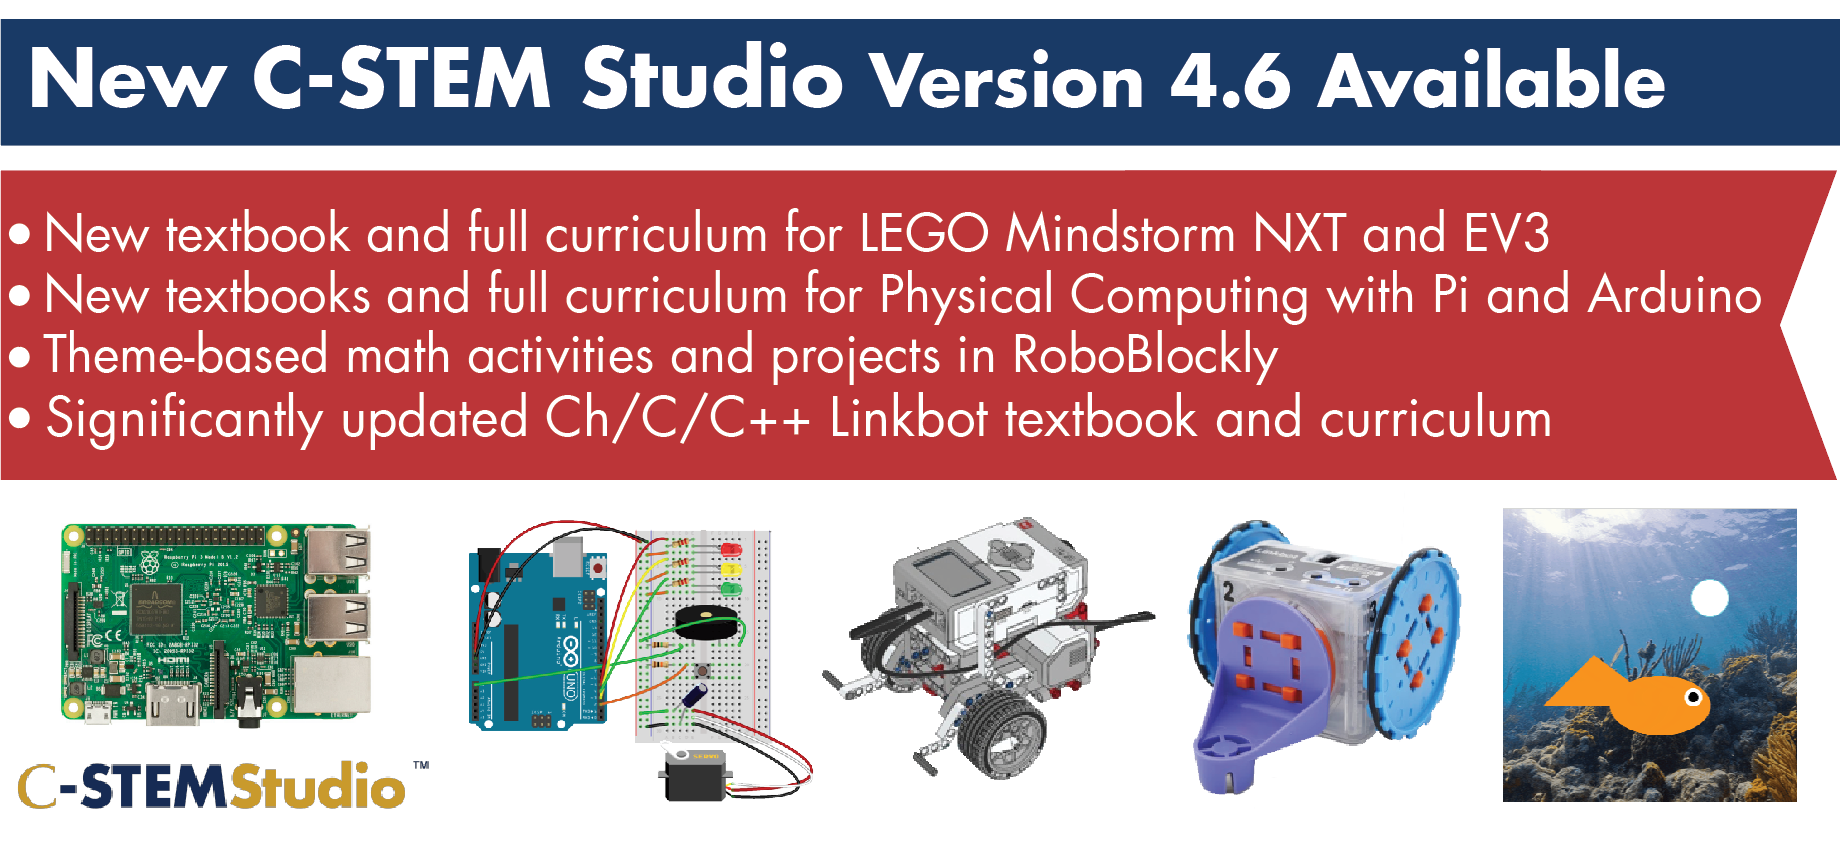 C-STEM Studio v4.6 released!